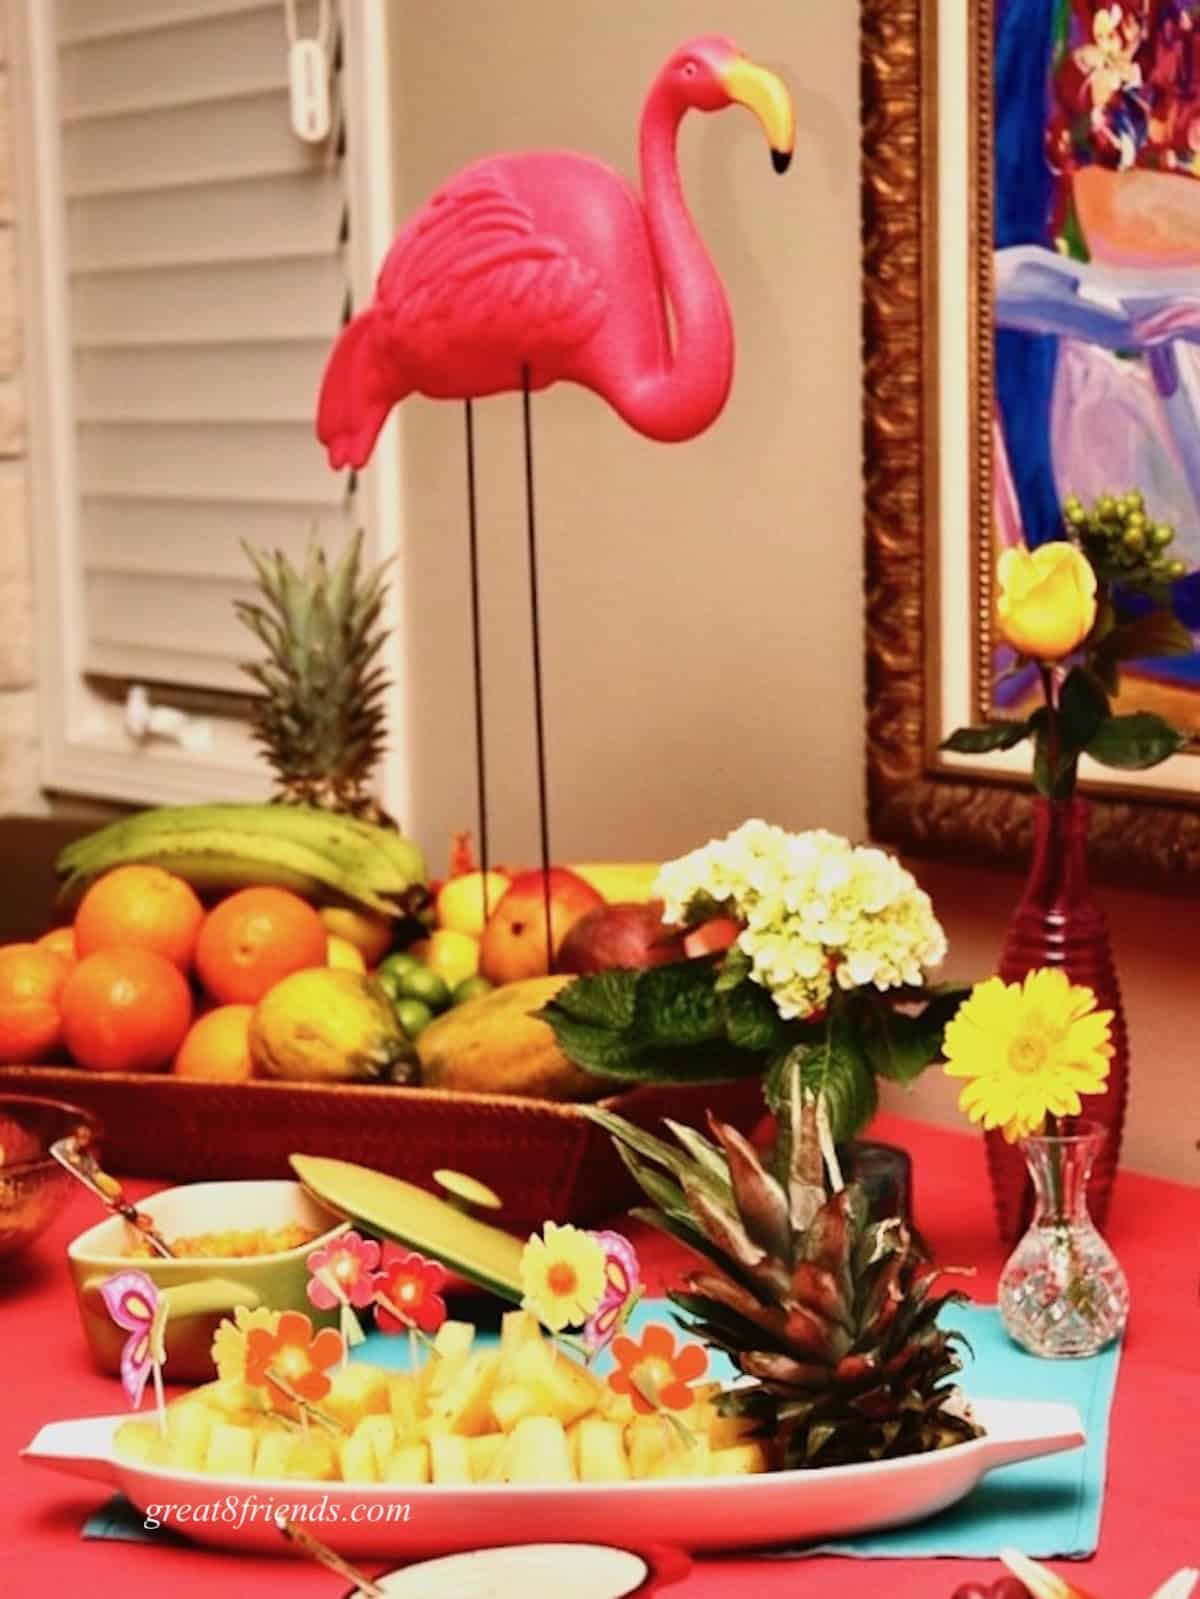 Appetizer table with pink flamingo centerpiece.